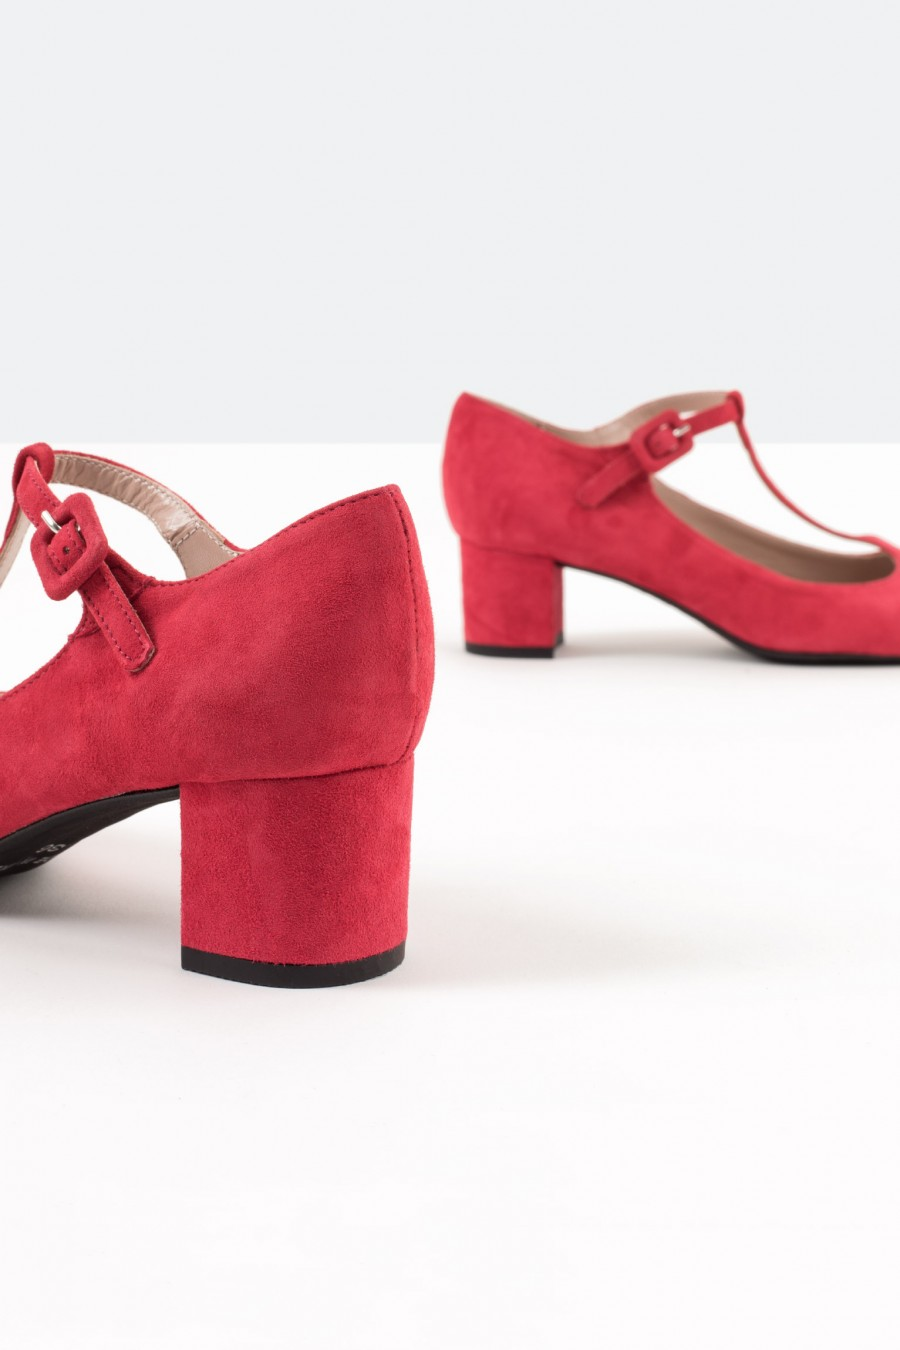 Red suede bebè shoes